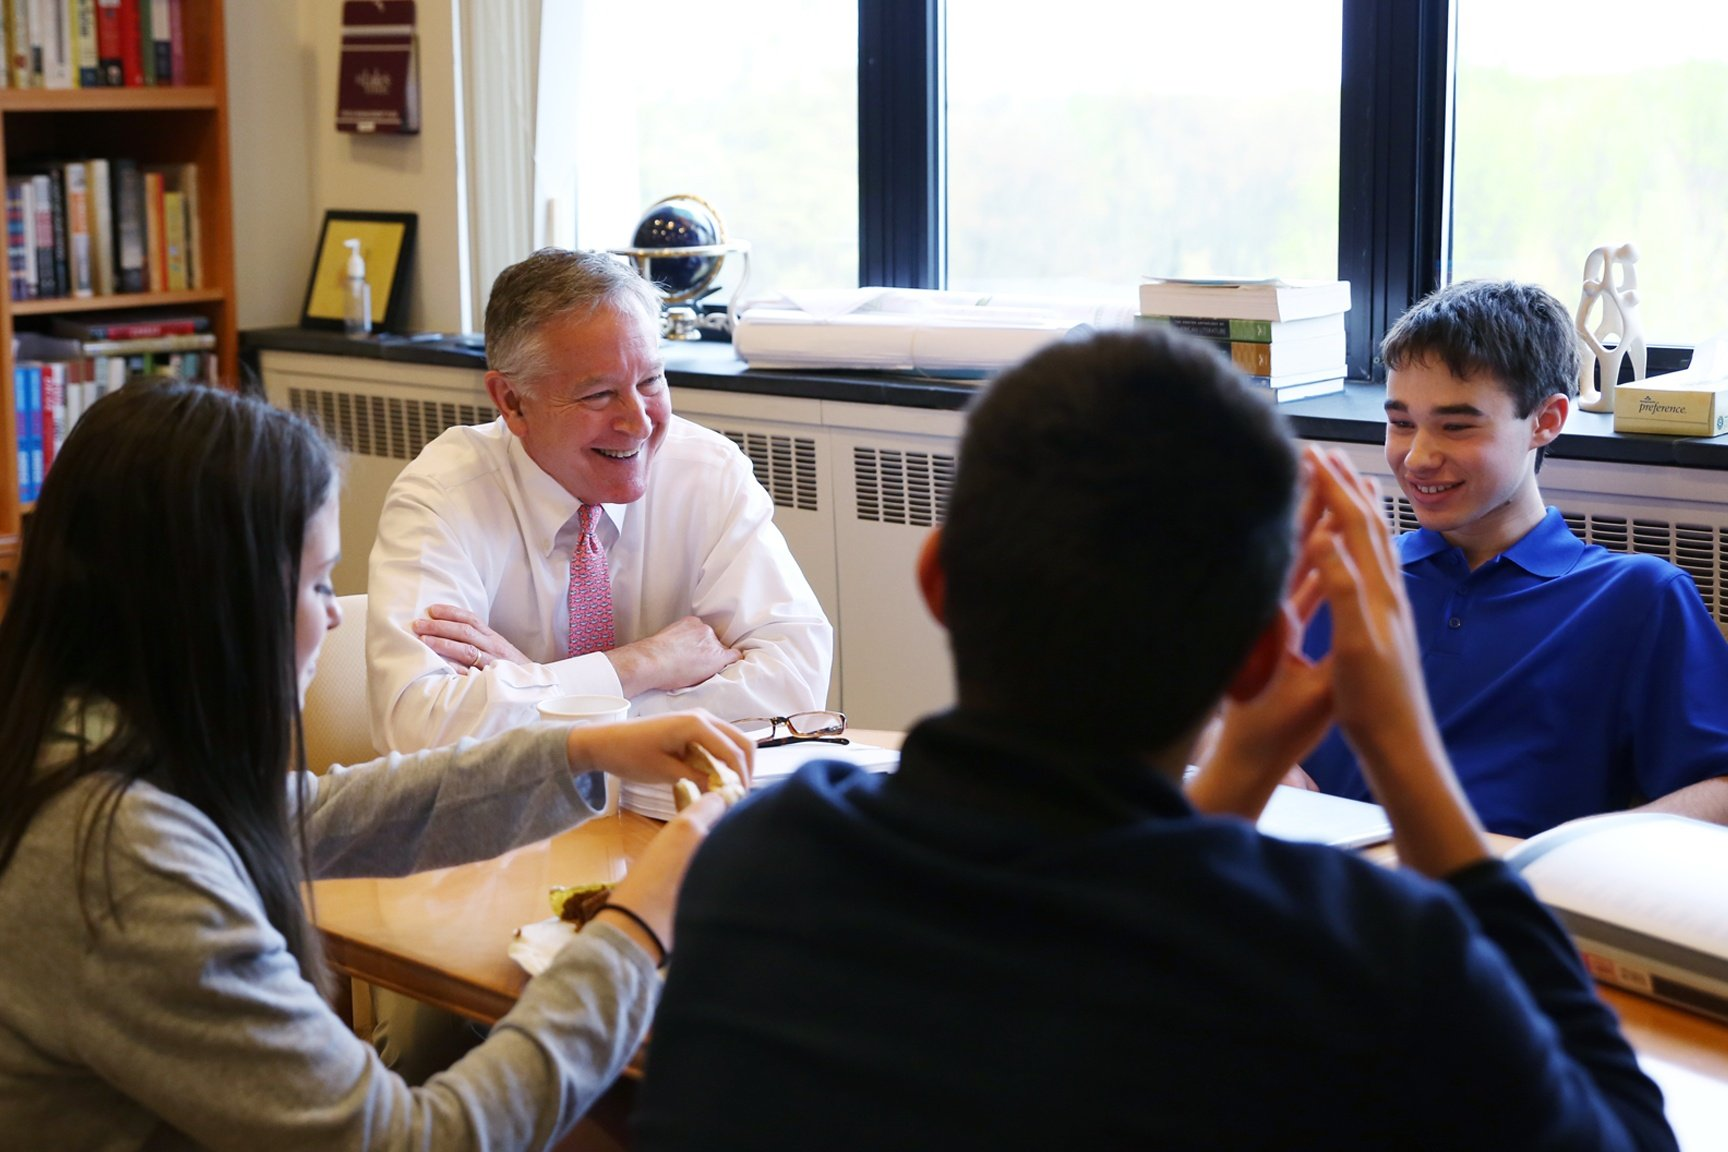 The Power of Compassionate Student Leaders